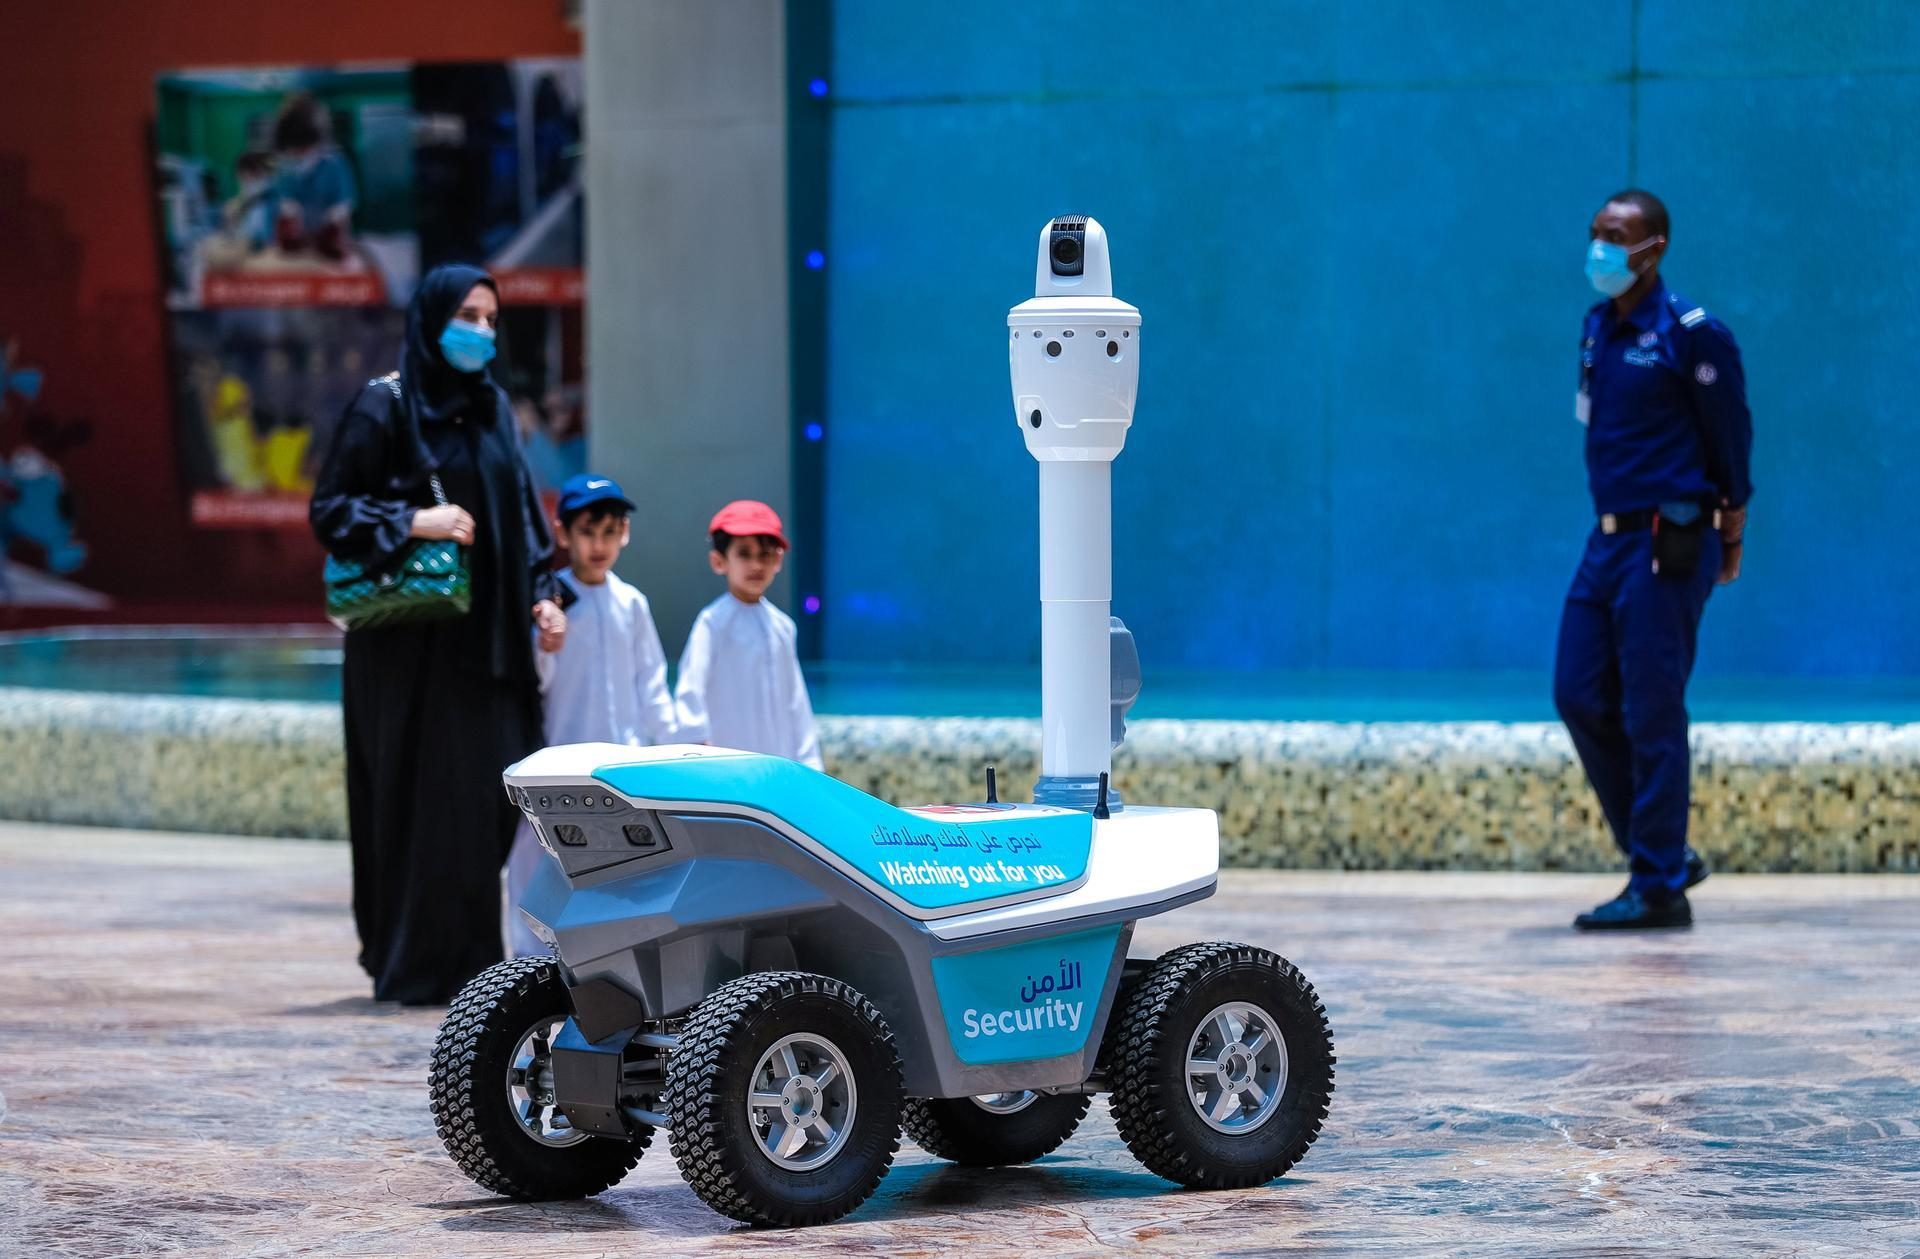 Robots save lives during a pandemic